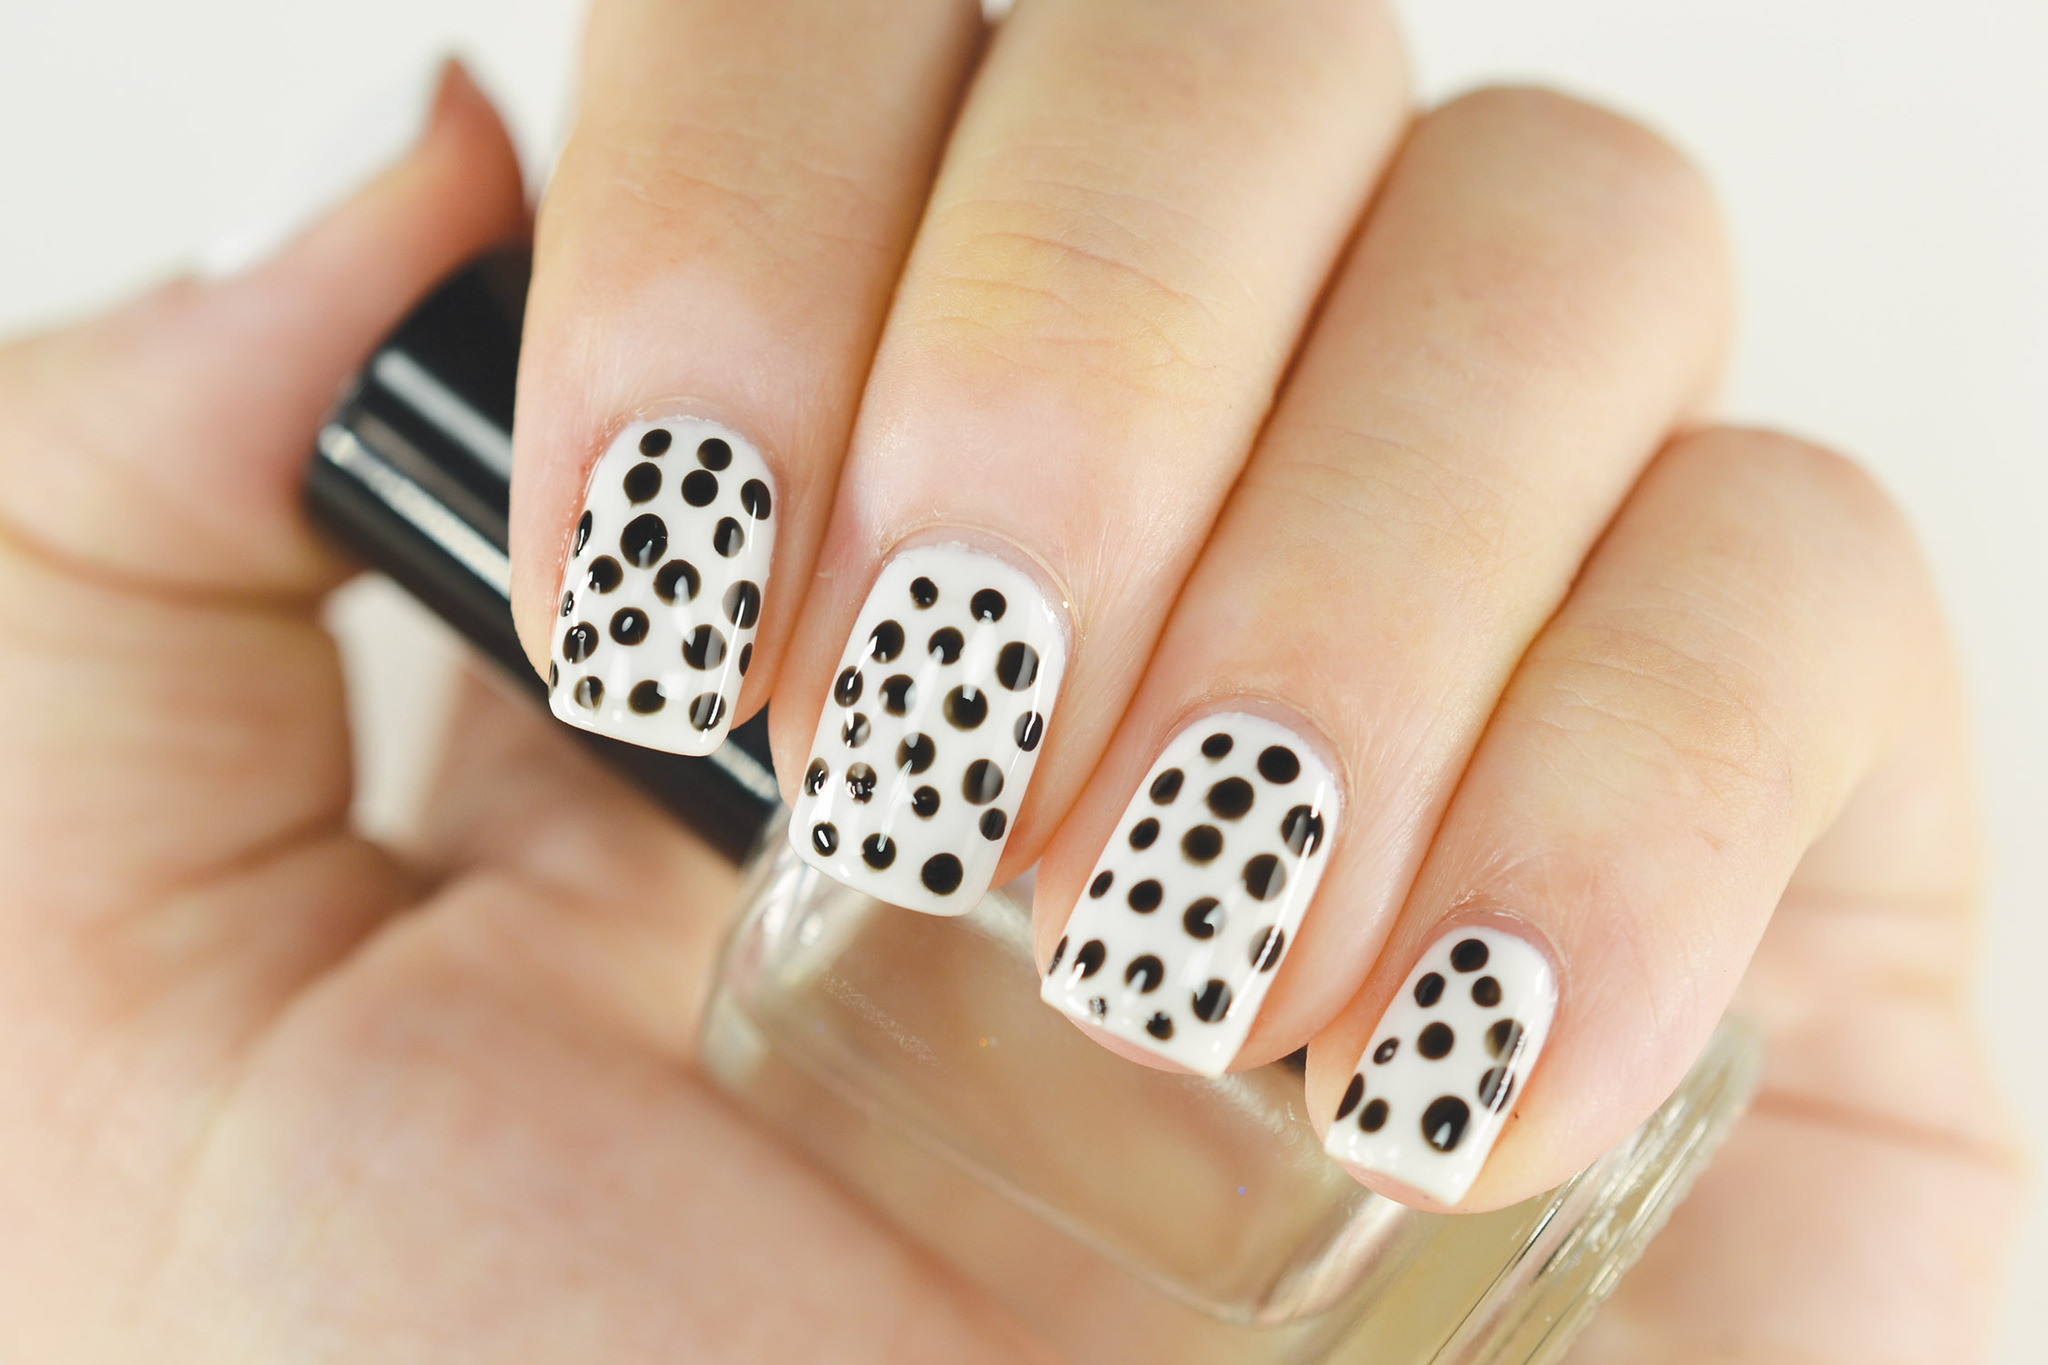 Dot Nail Art Method Bobby Pin Extract From Homemade Polish By Allison Rose Spiekermann How To Paint Patterned